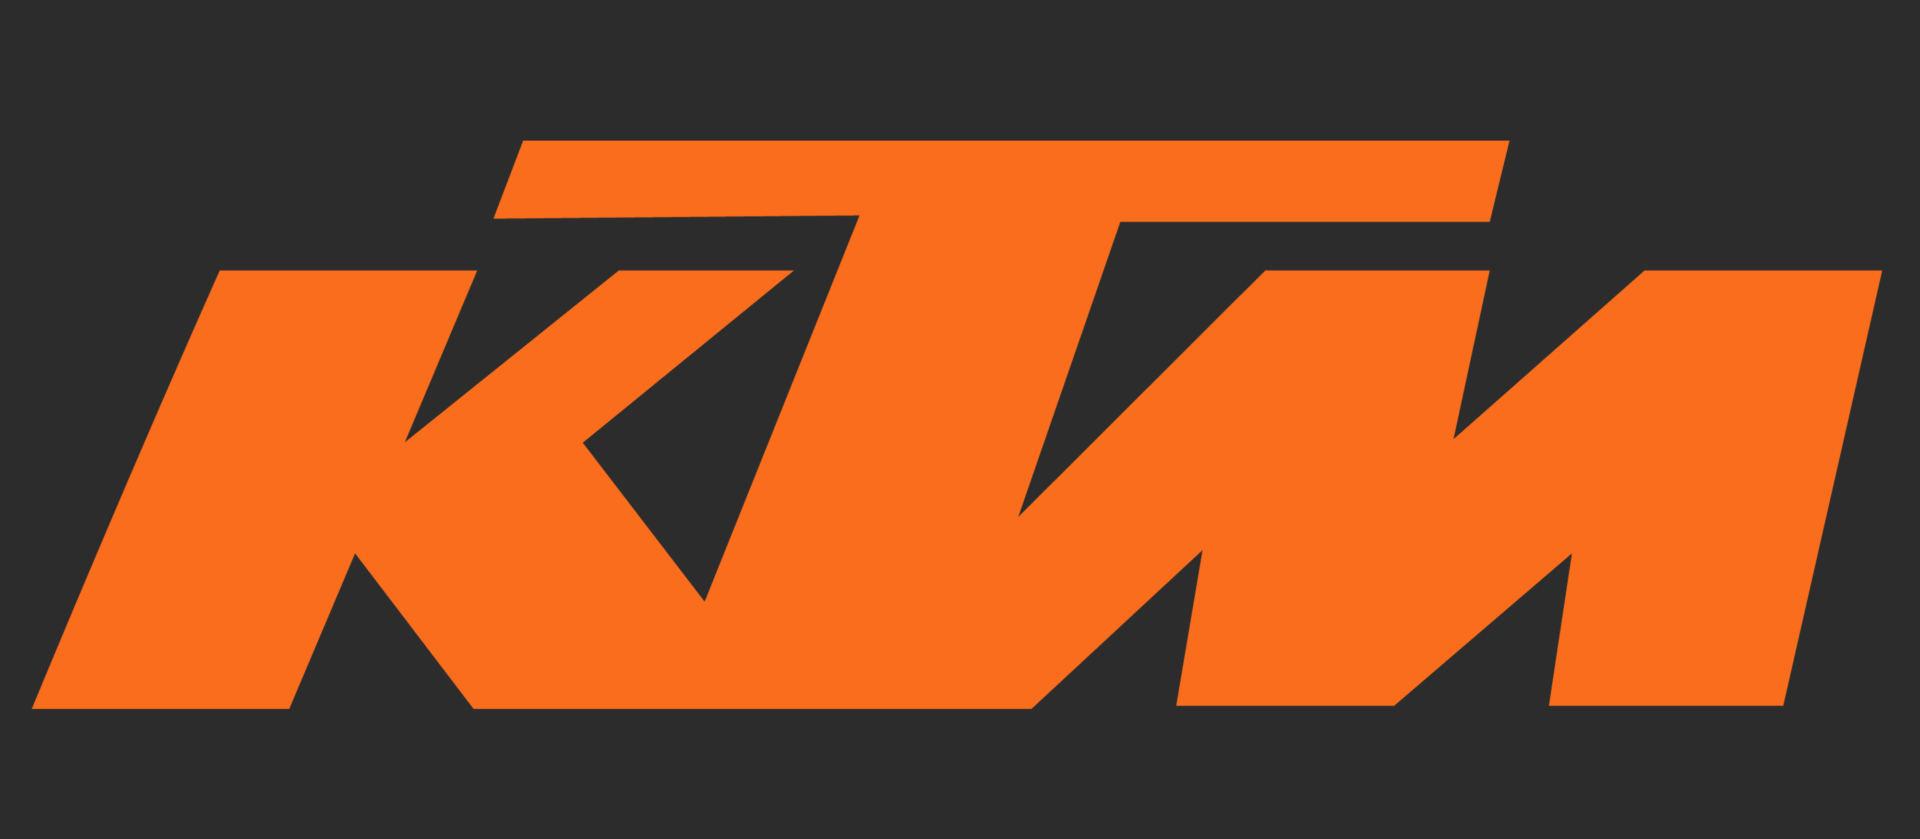 pin ktm duke logo - photo #9